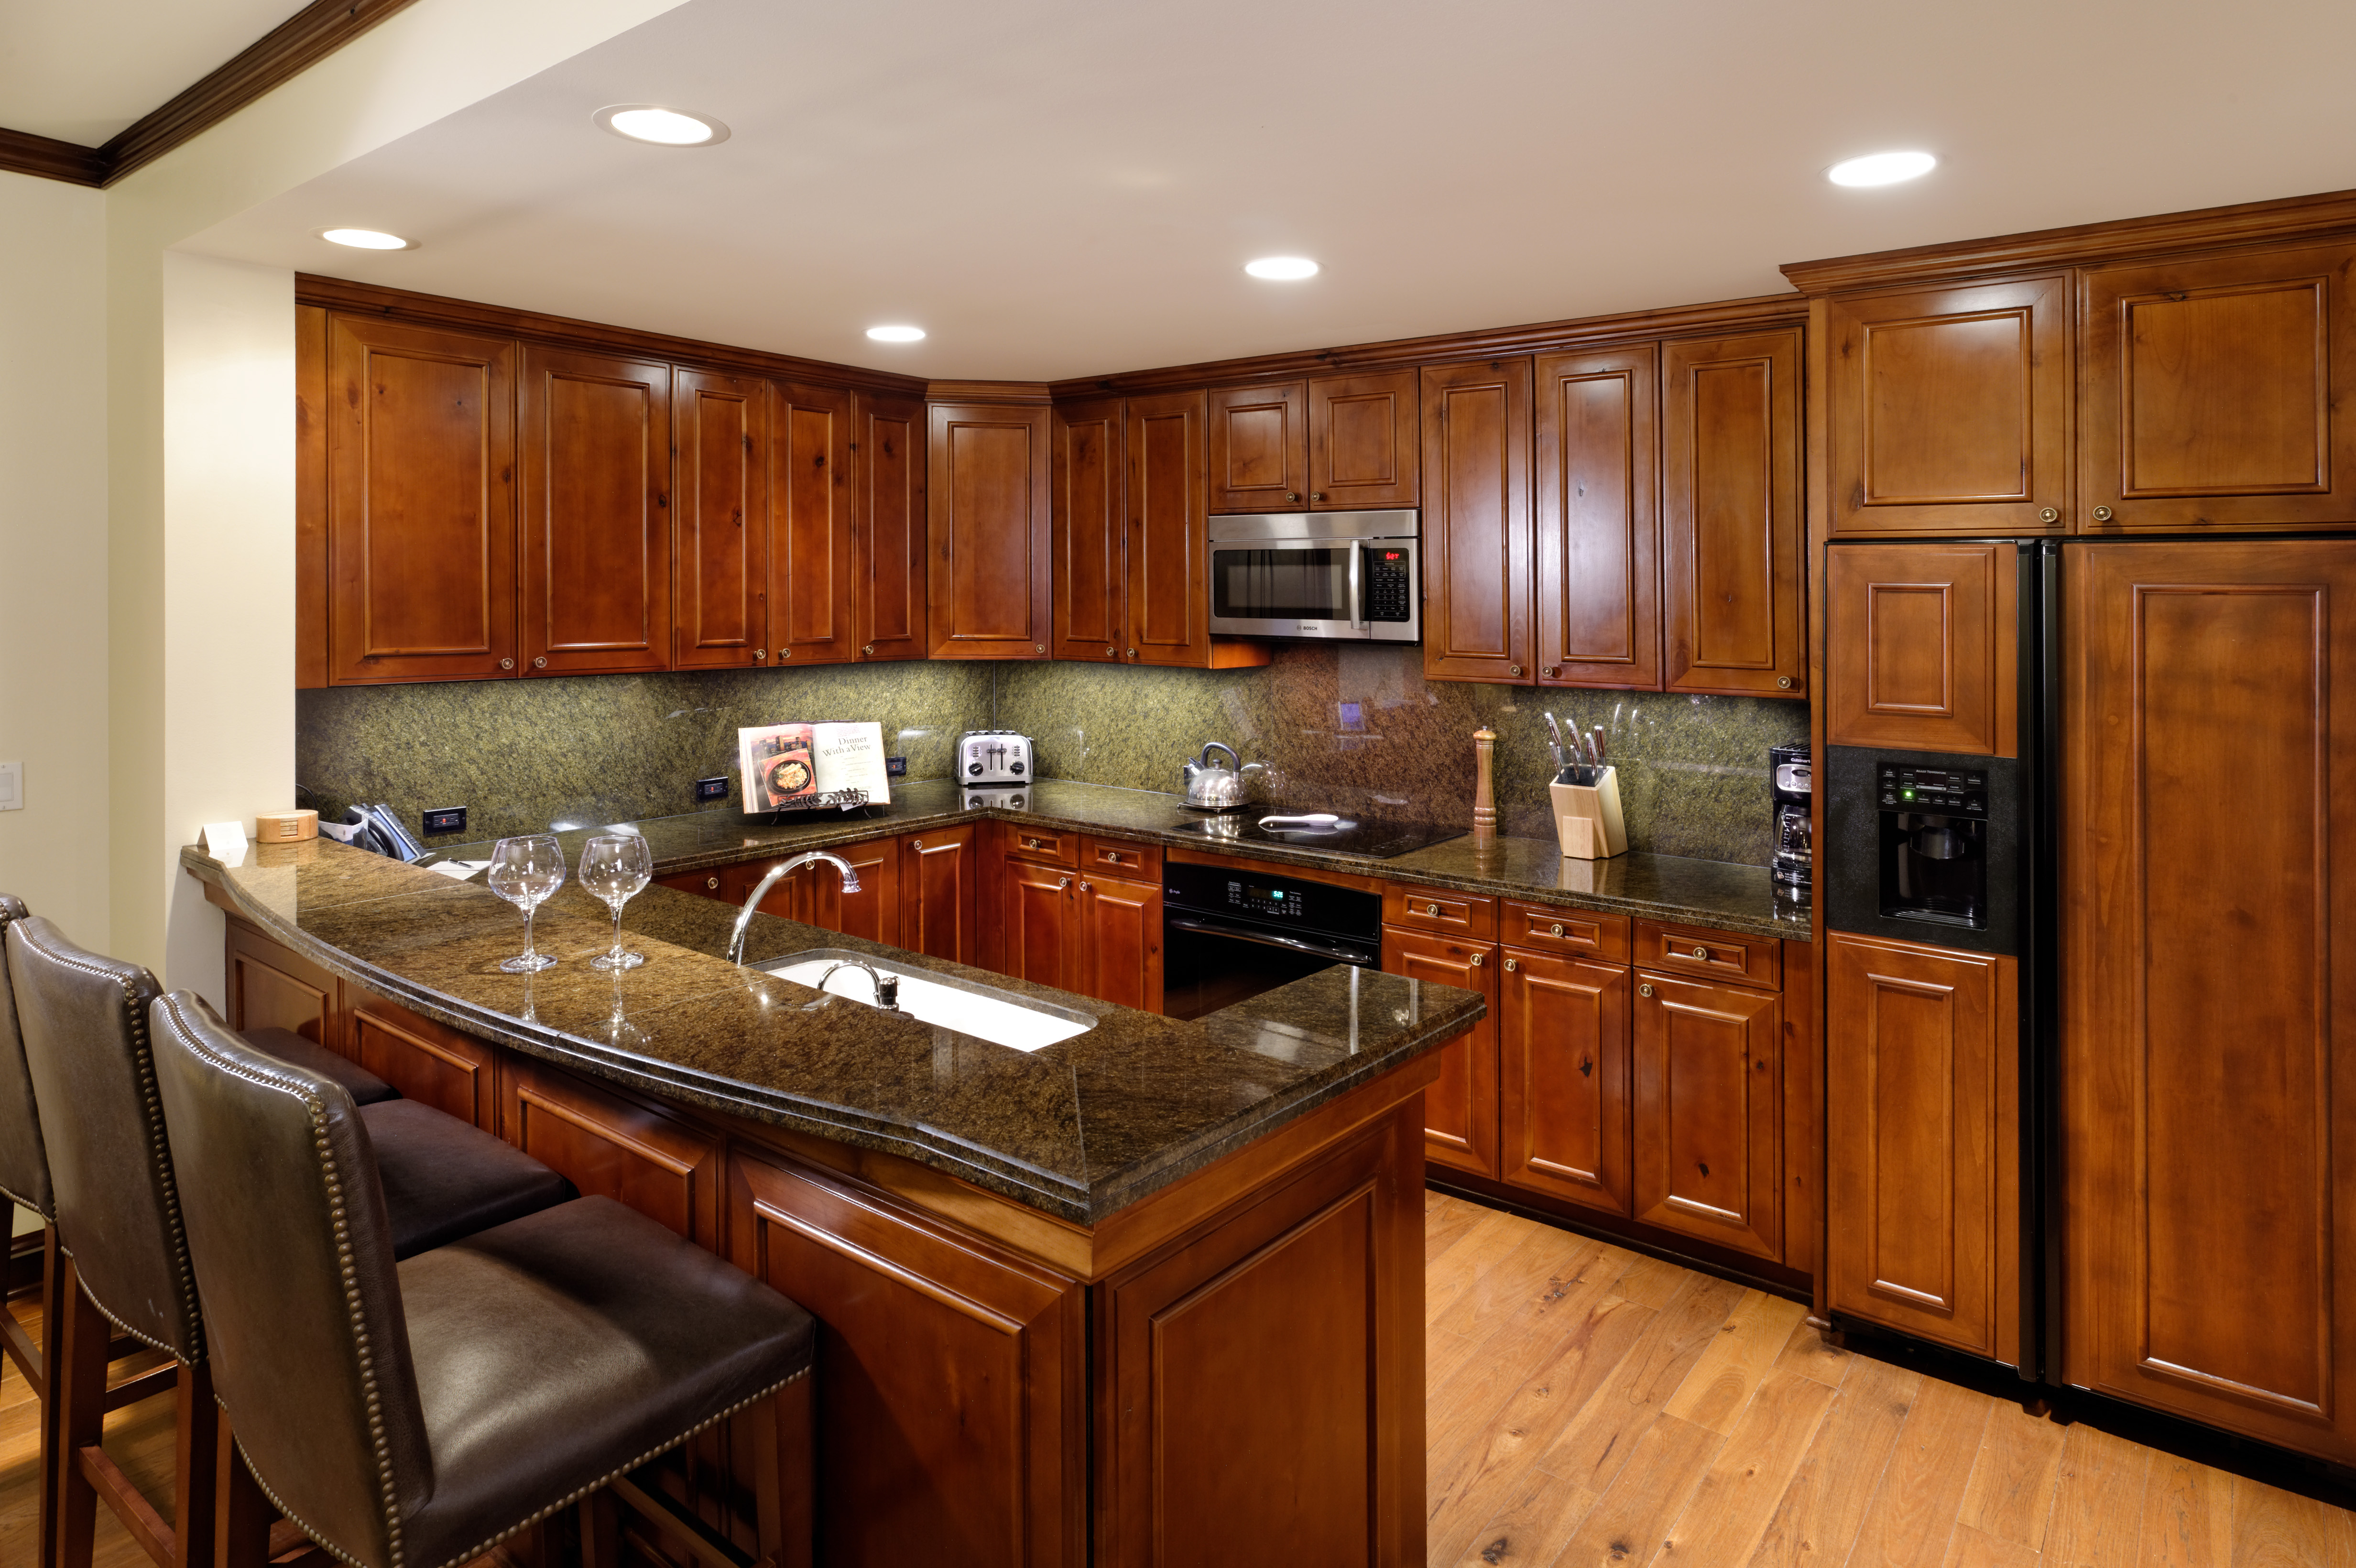 0075 Prospector Road, 8103, Summer Interest 10, Ritz-Carlton Club Fractional Condo Interest Aspen Photo 5